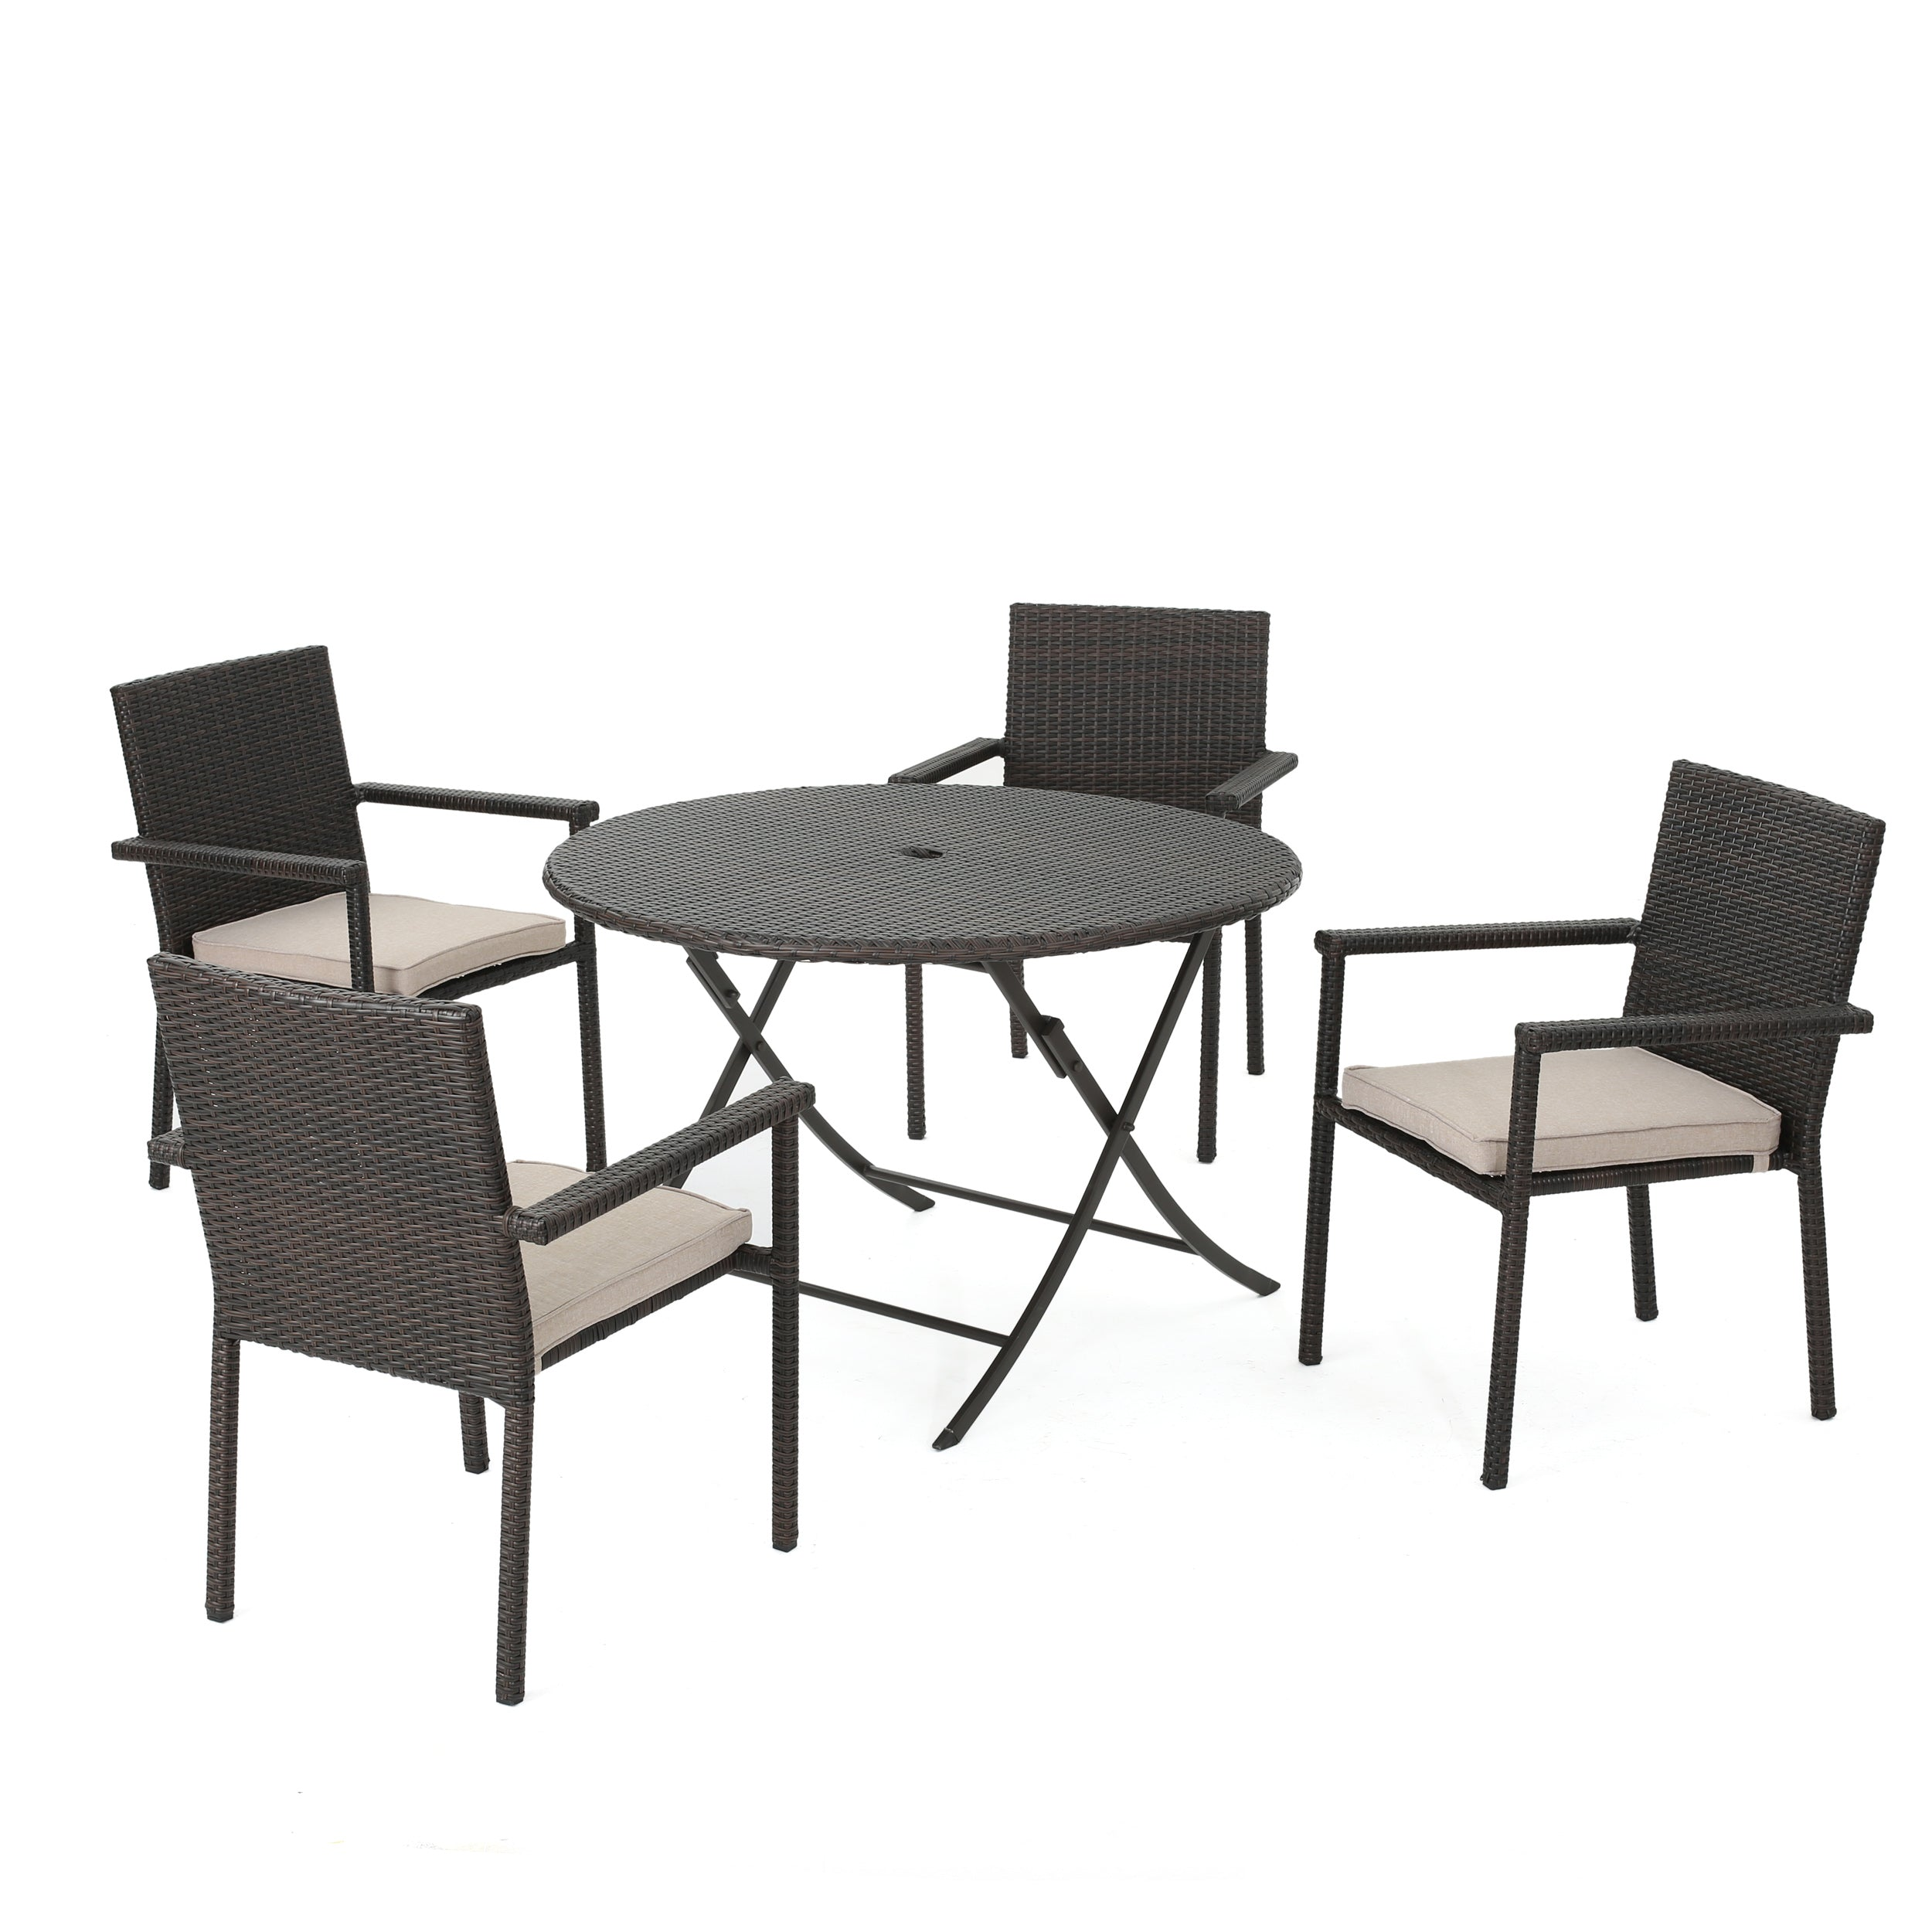 Adelante Outdoor 5 Piece Multi brown Wicker Dining Set with Foldable Table